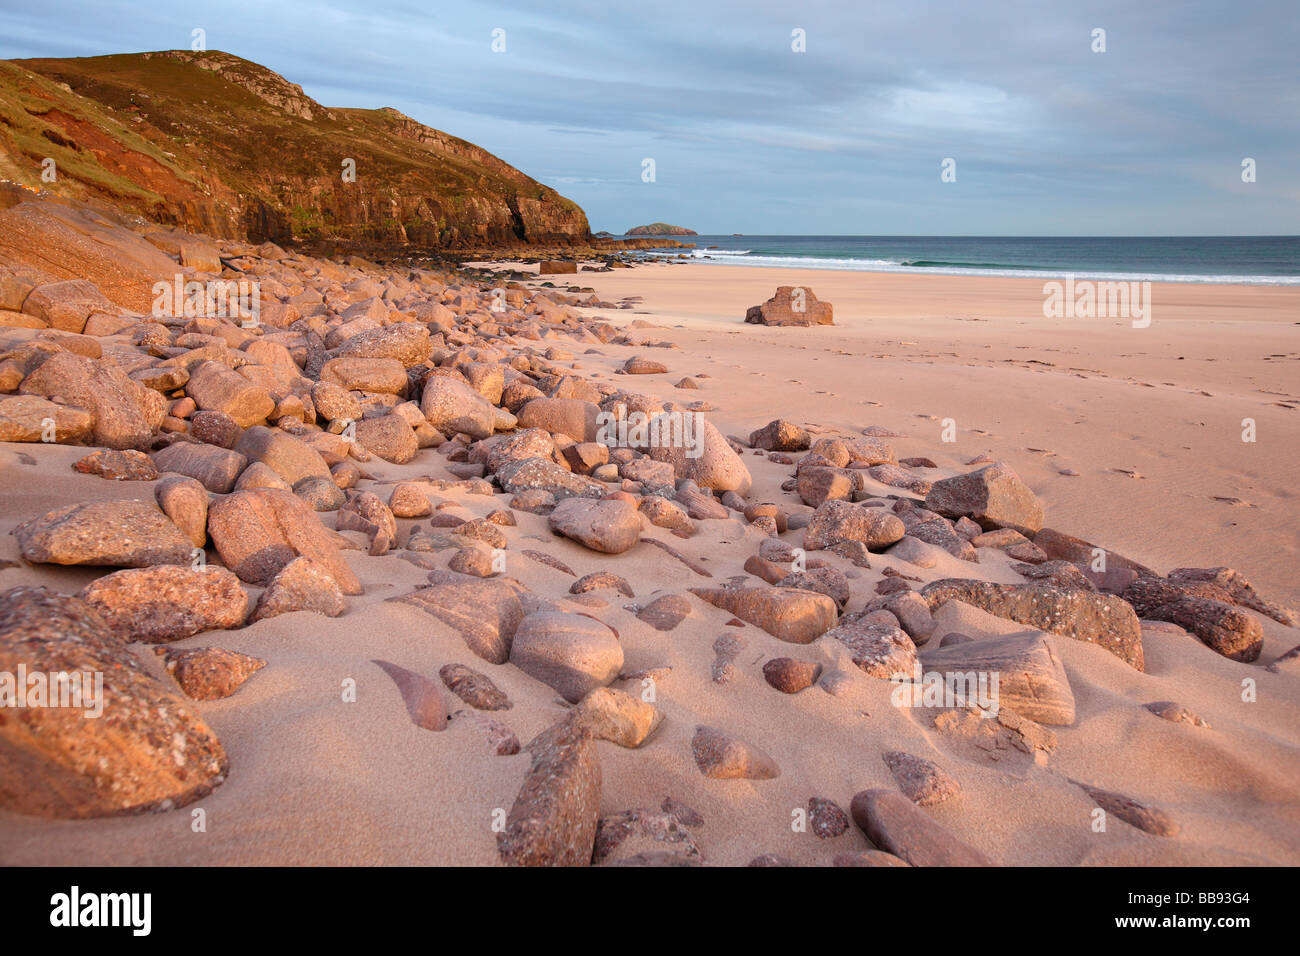 beach in early morning light Sandwood Bay most remote beach in UK Sutherland Northern Scotland Great Britain UK - Stock Image